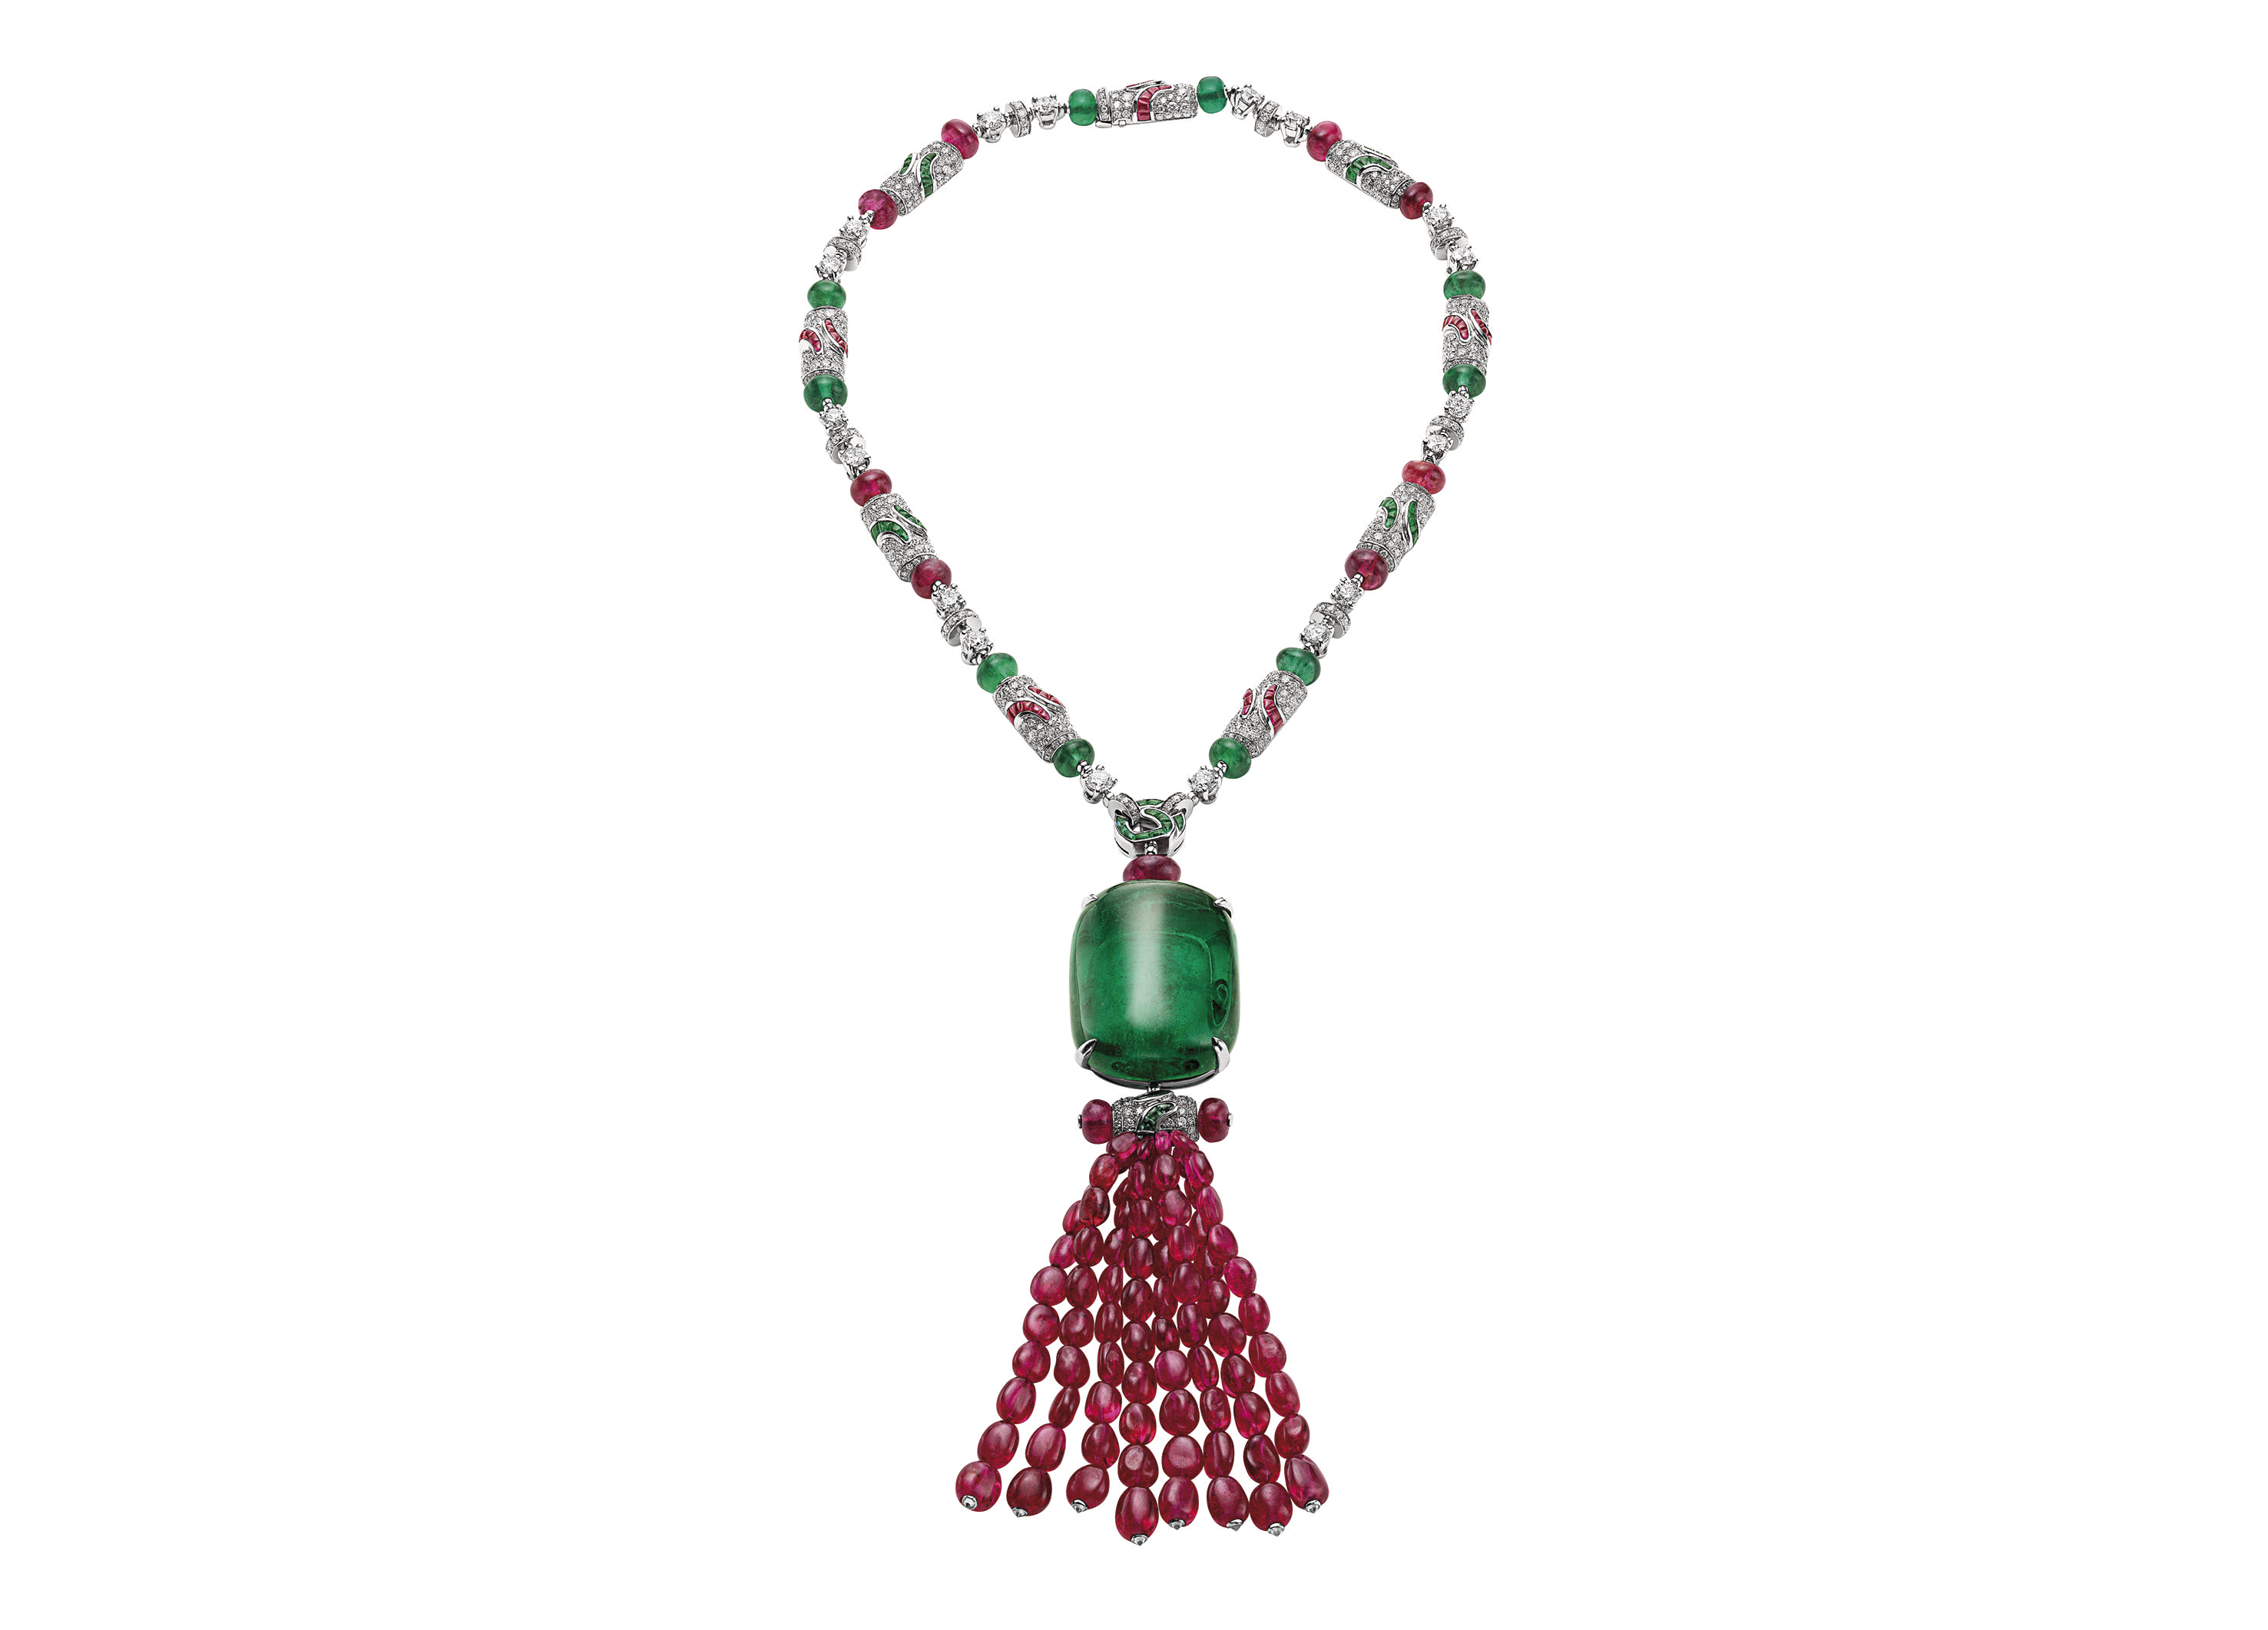 SPINEL-Bulgari-necklace-with-spinels-and-emeralds